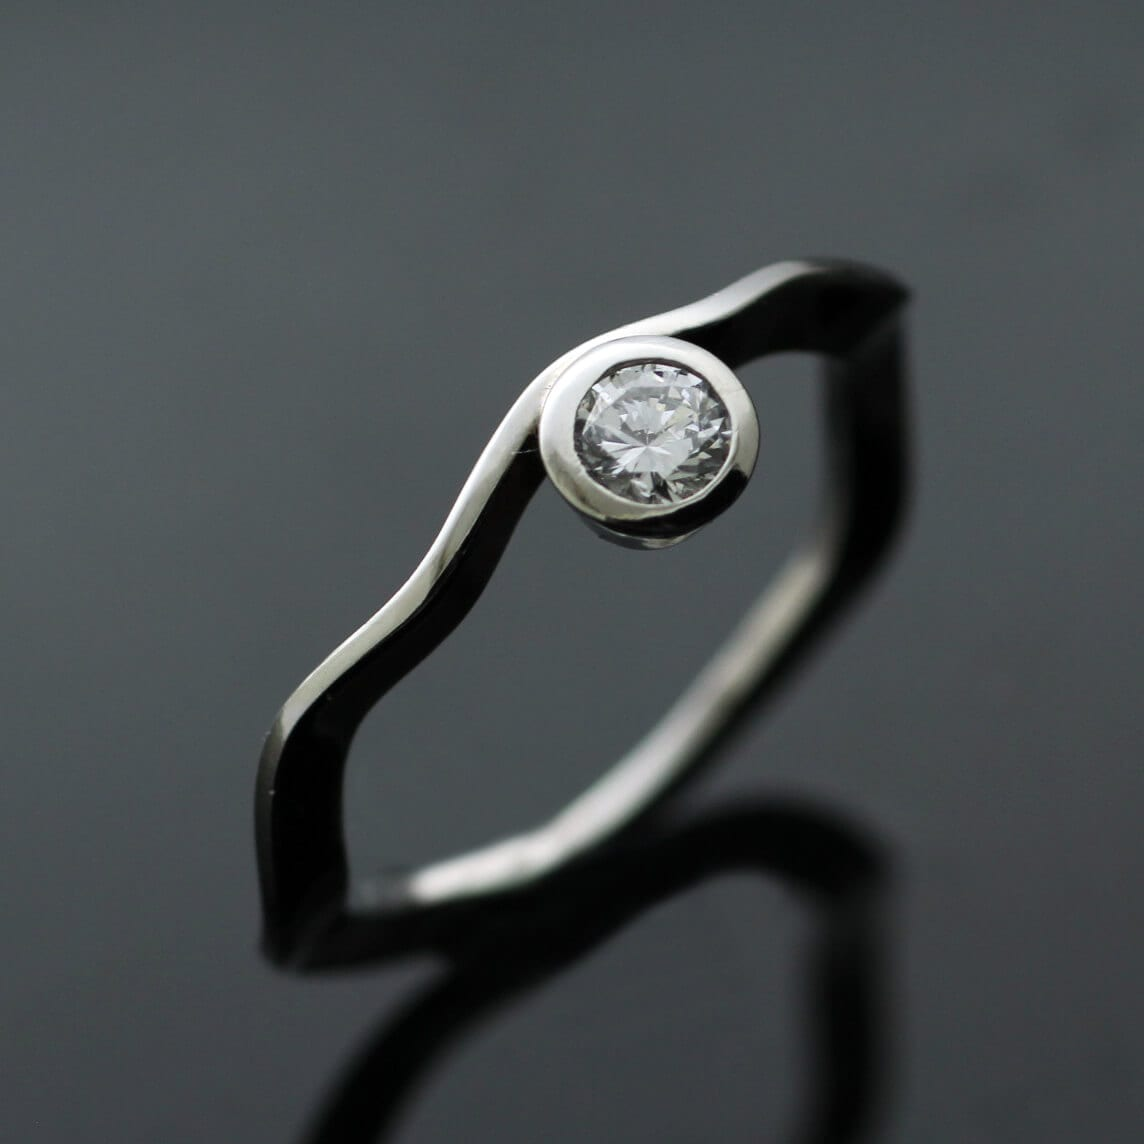 Solitaire Diamond and Platinum contemporary engagement ring from the Ruscello Collection